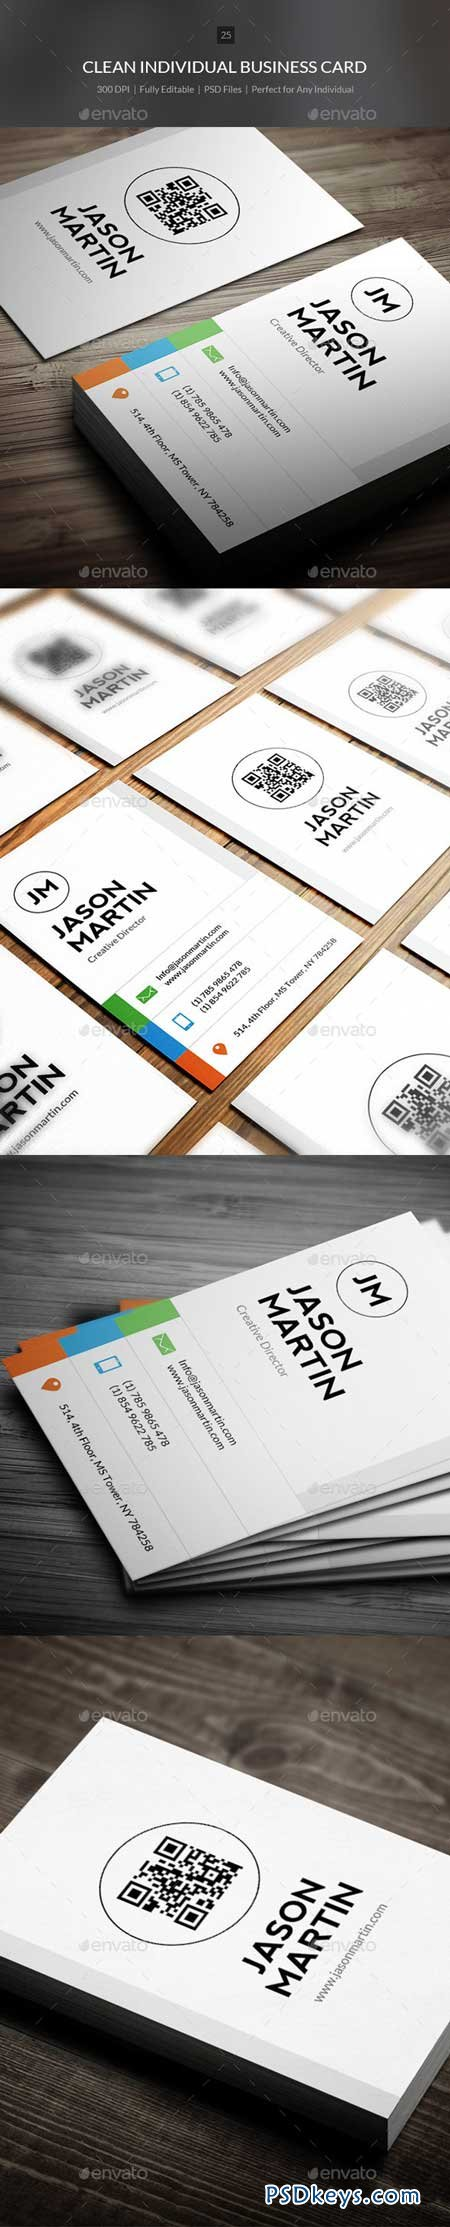 Clean Individual Business Card - 25 9259781